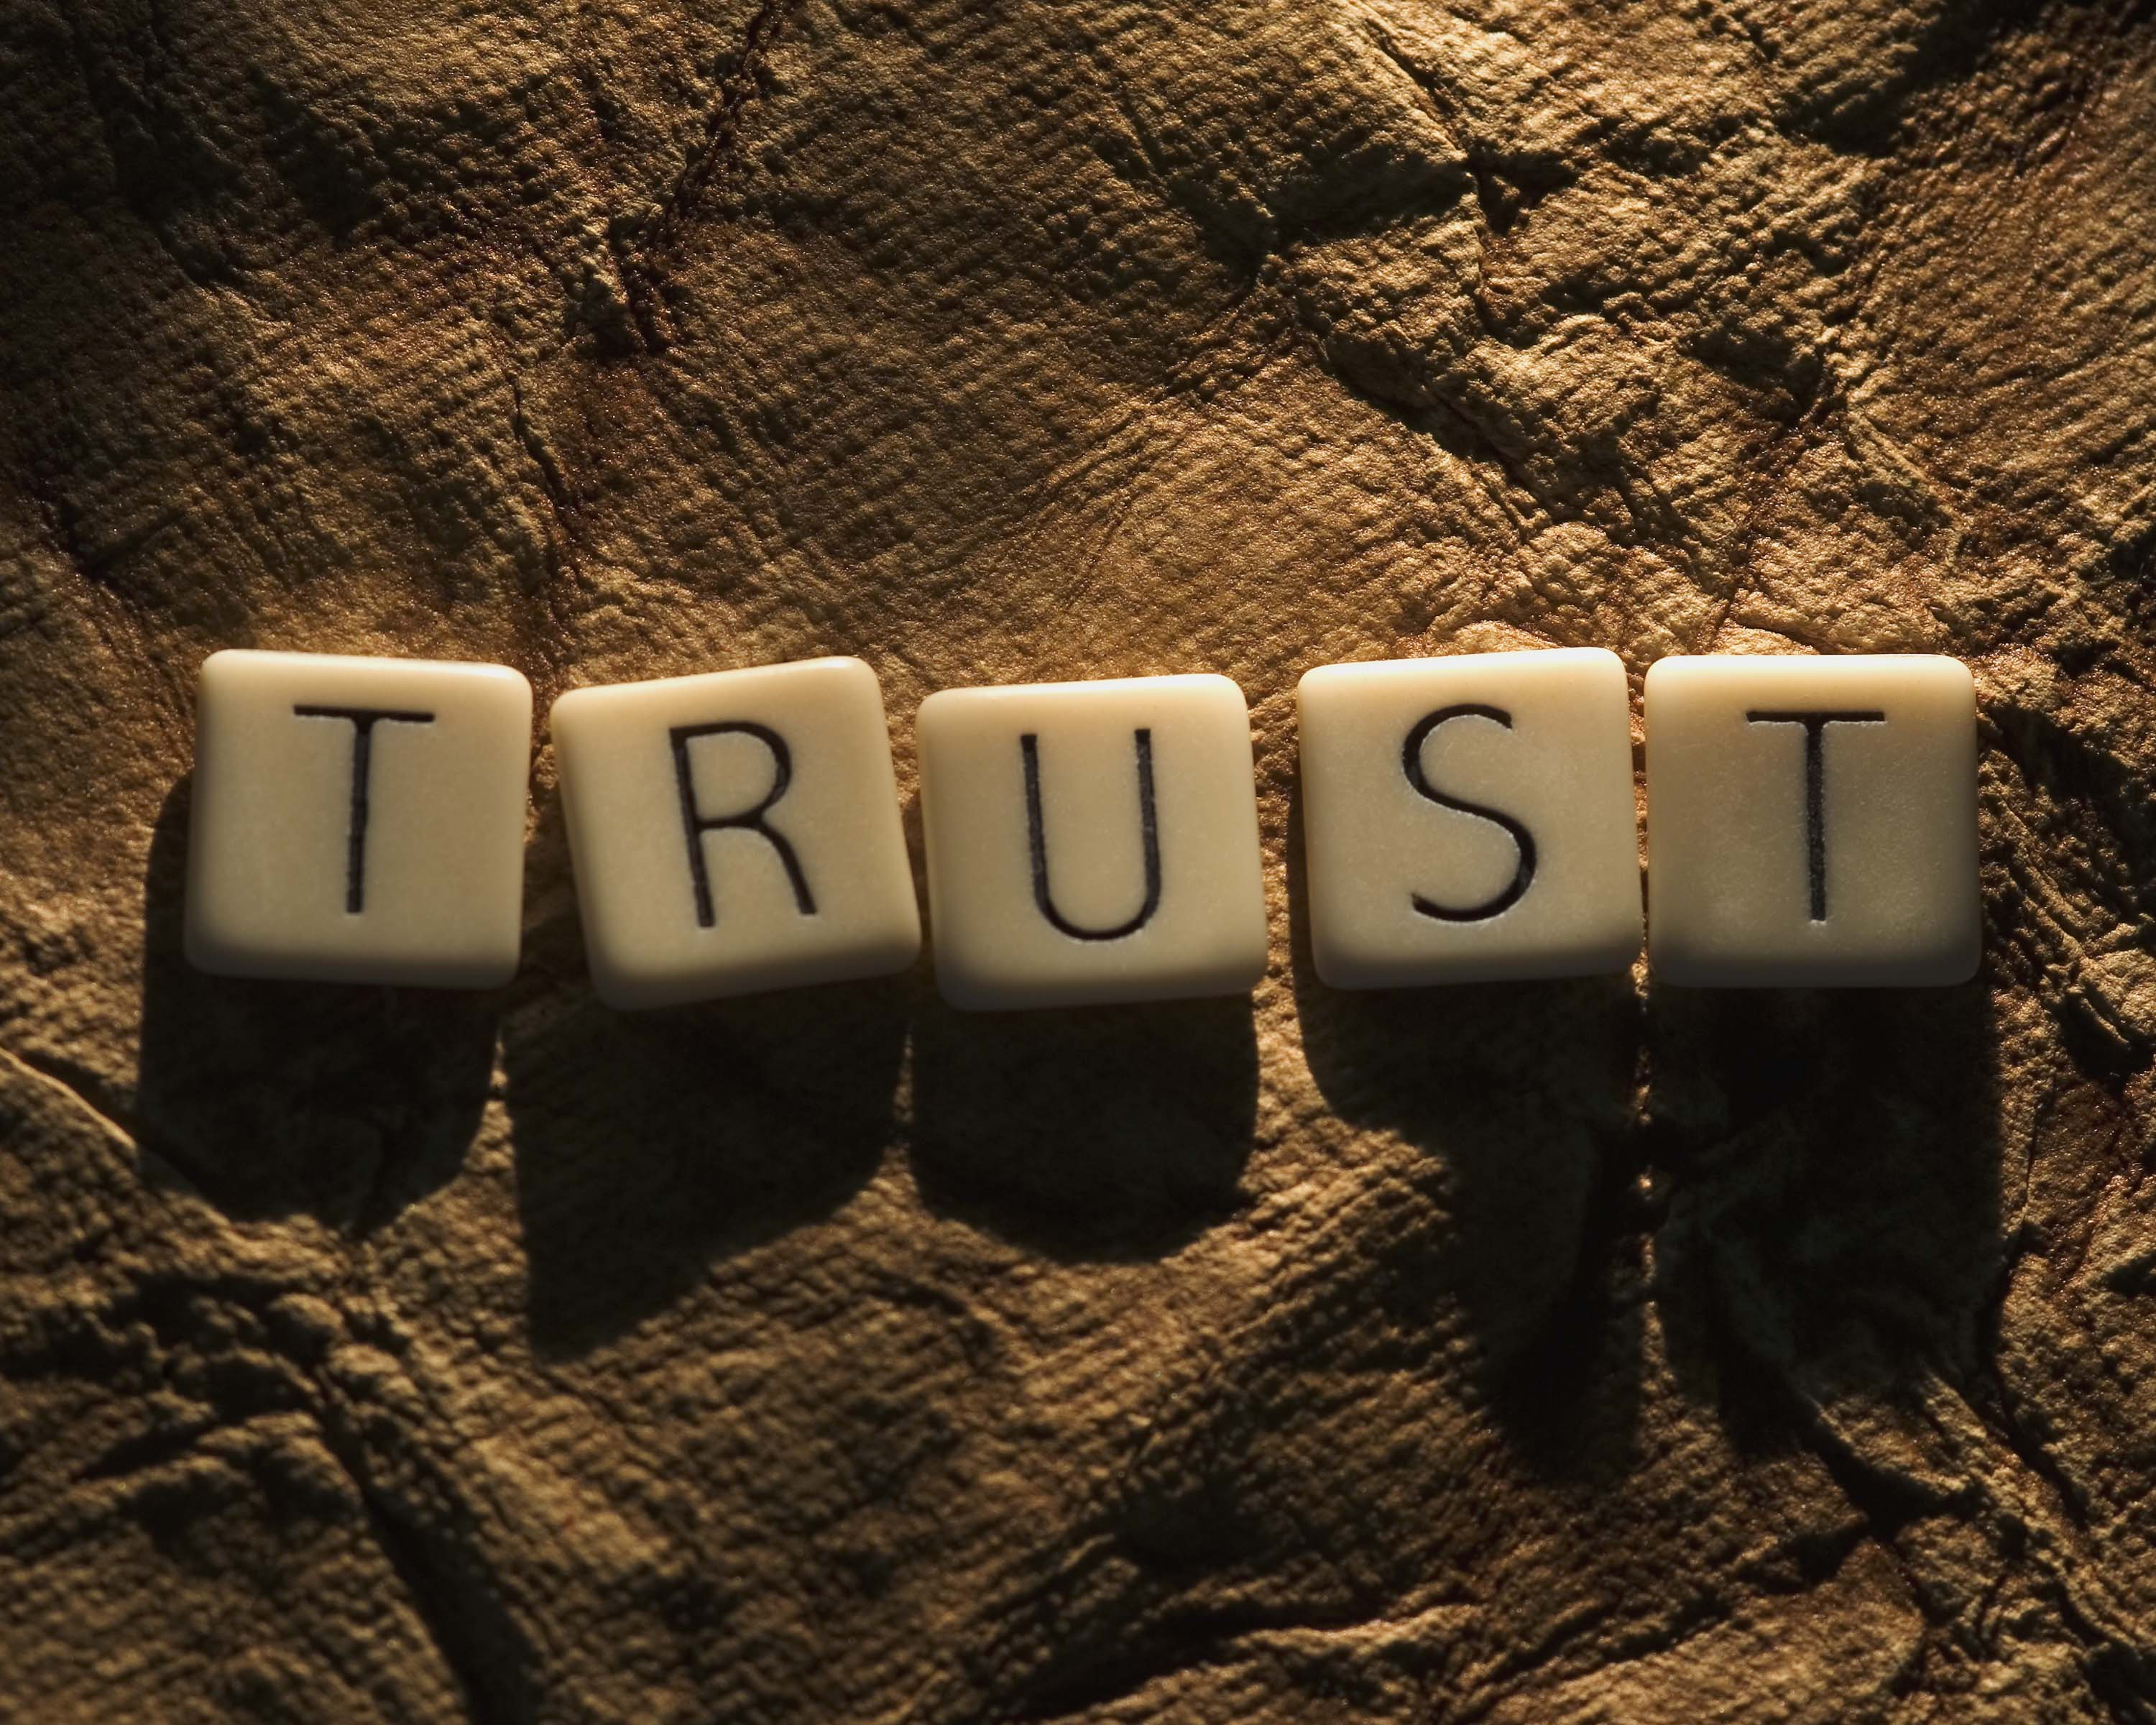 In Whom Do You Put Your Trust?